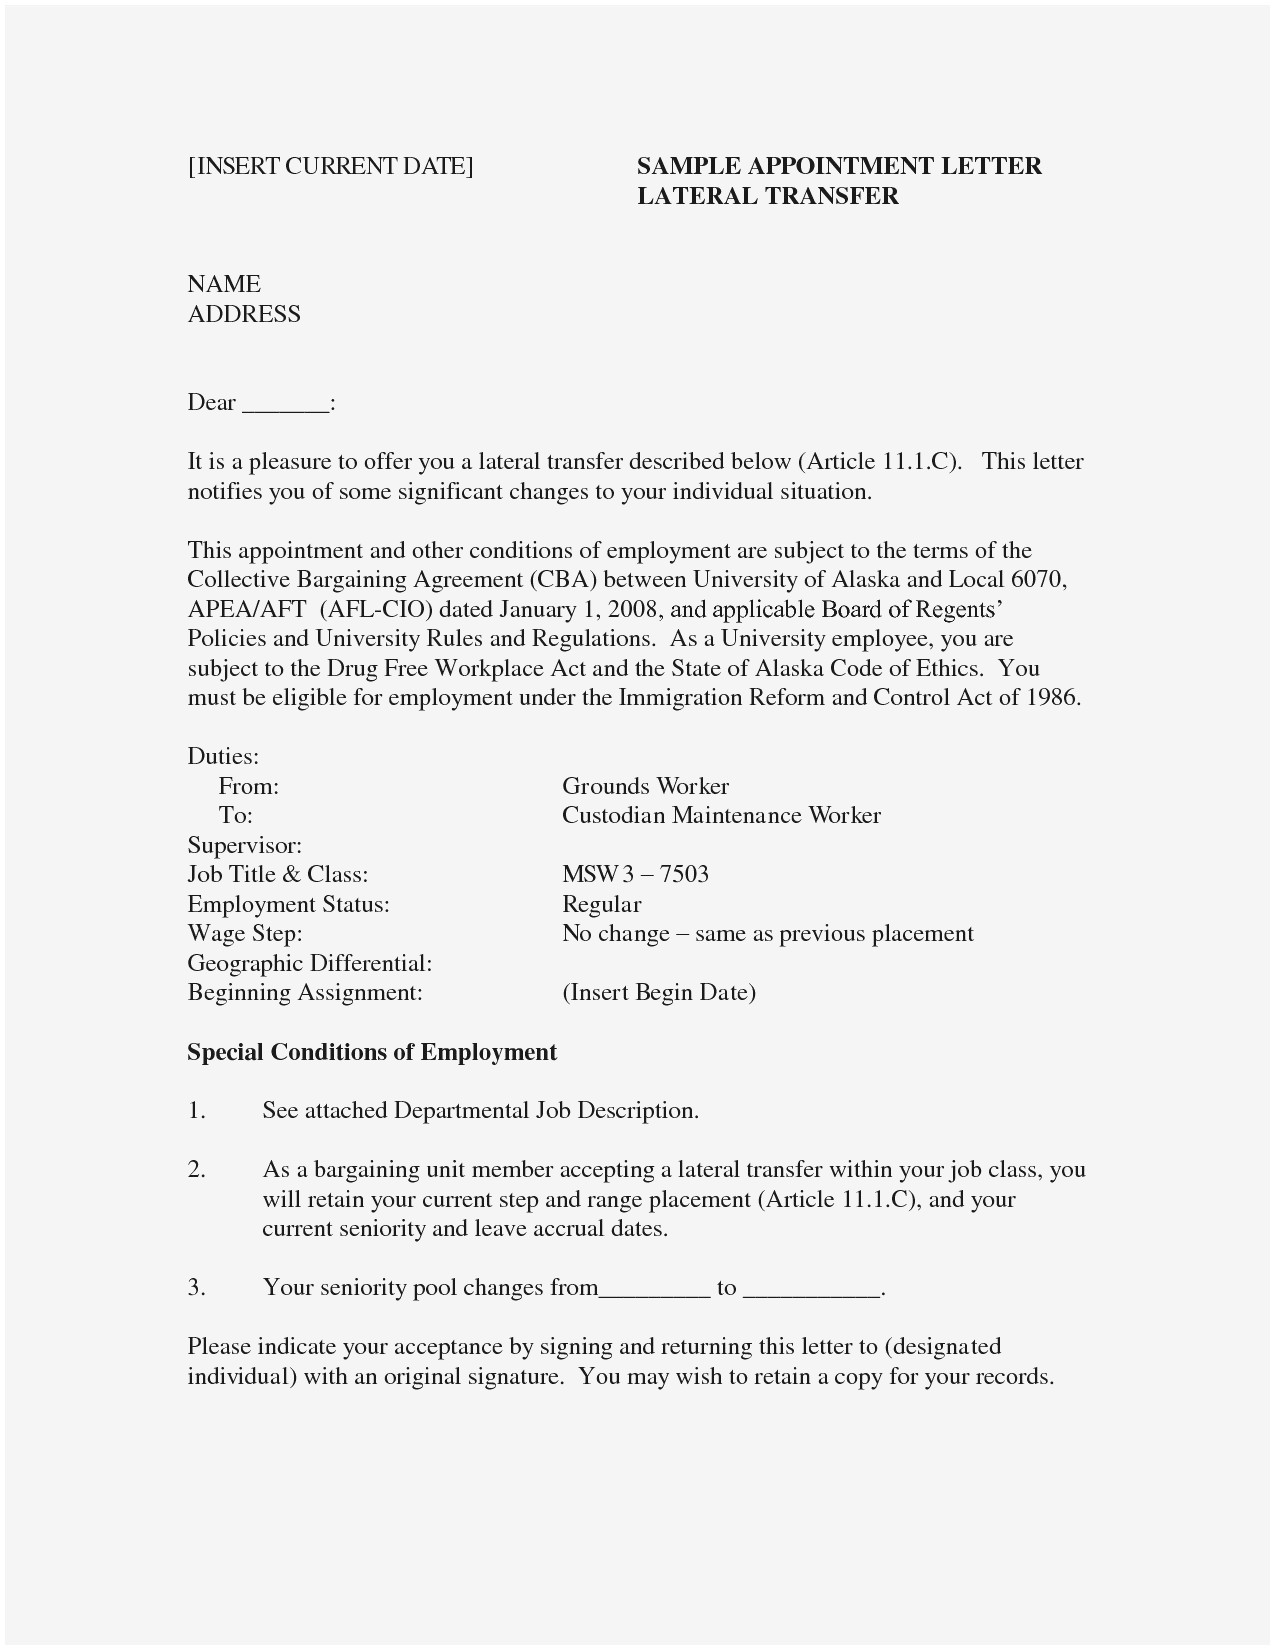 Offer to Purchase Letter Template - Letter Intent to Purchase A Business